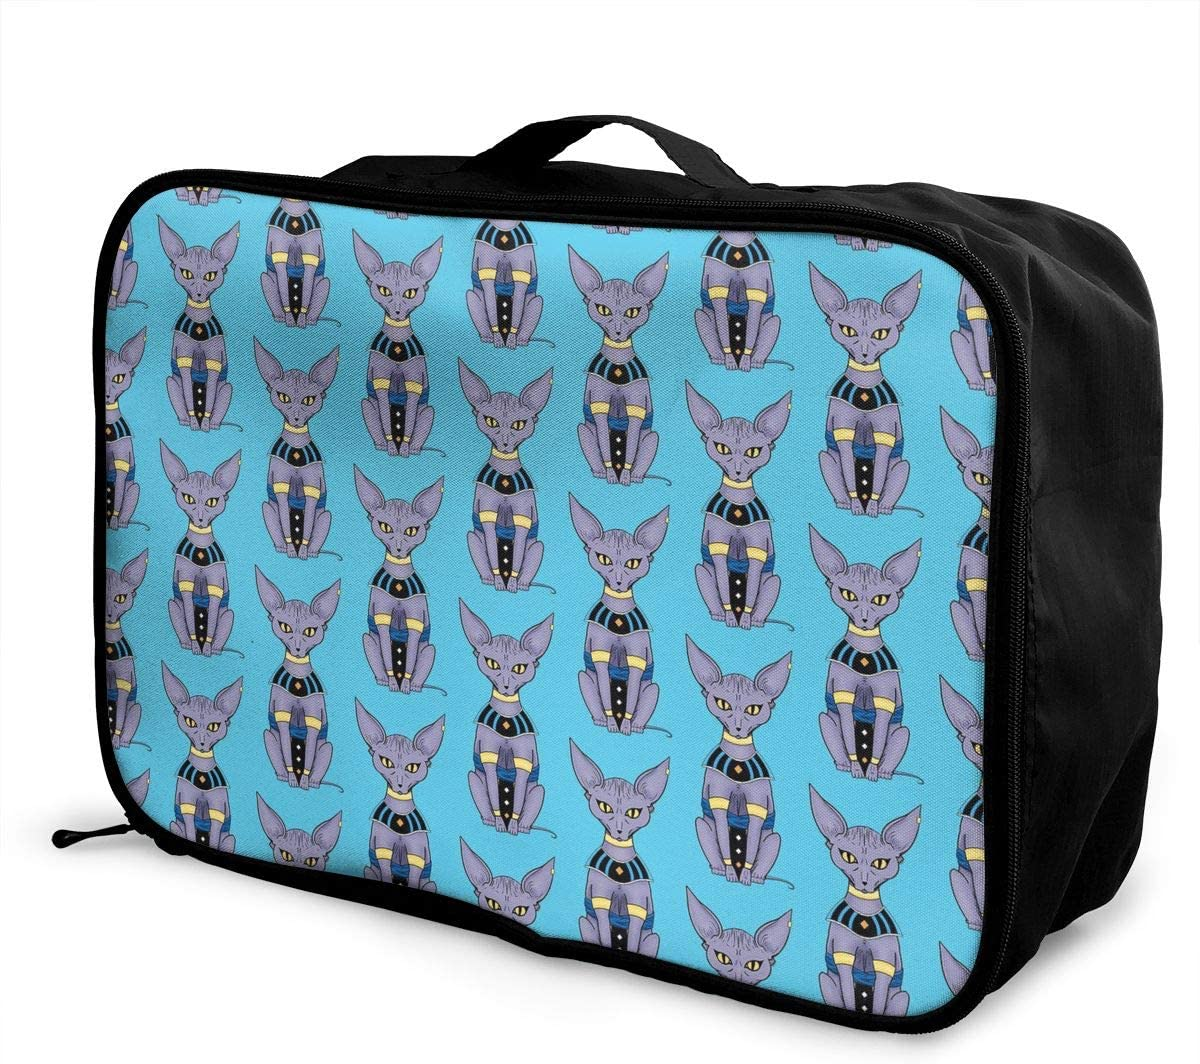 Plaid Bright Travel Carry-on Luggage Weekender Bag Overnight Tote Flight Duffel In Trolley Handle